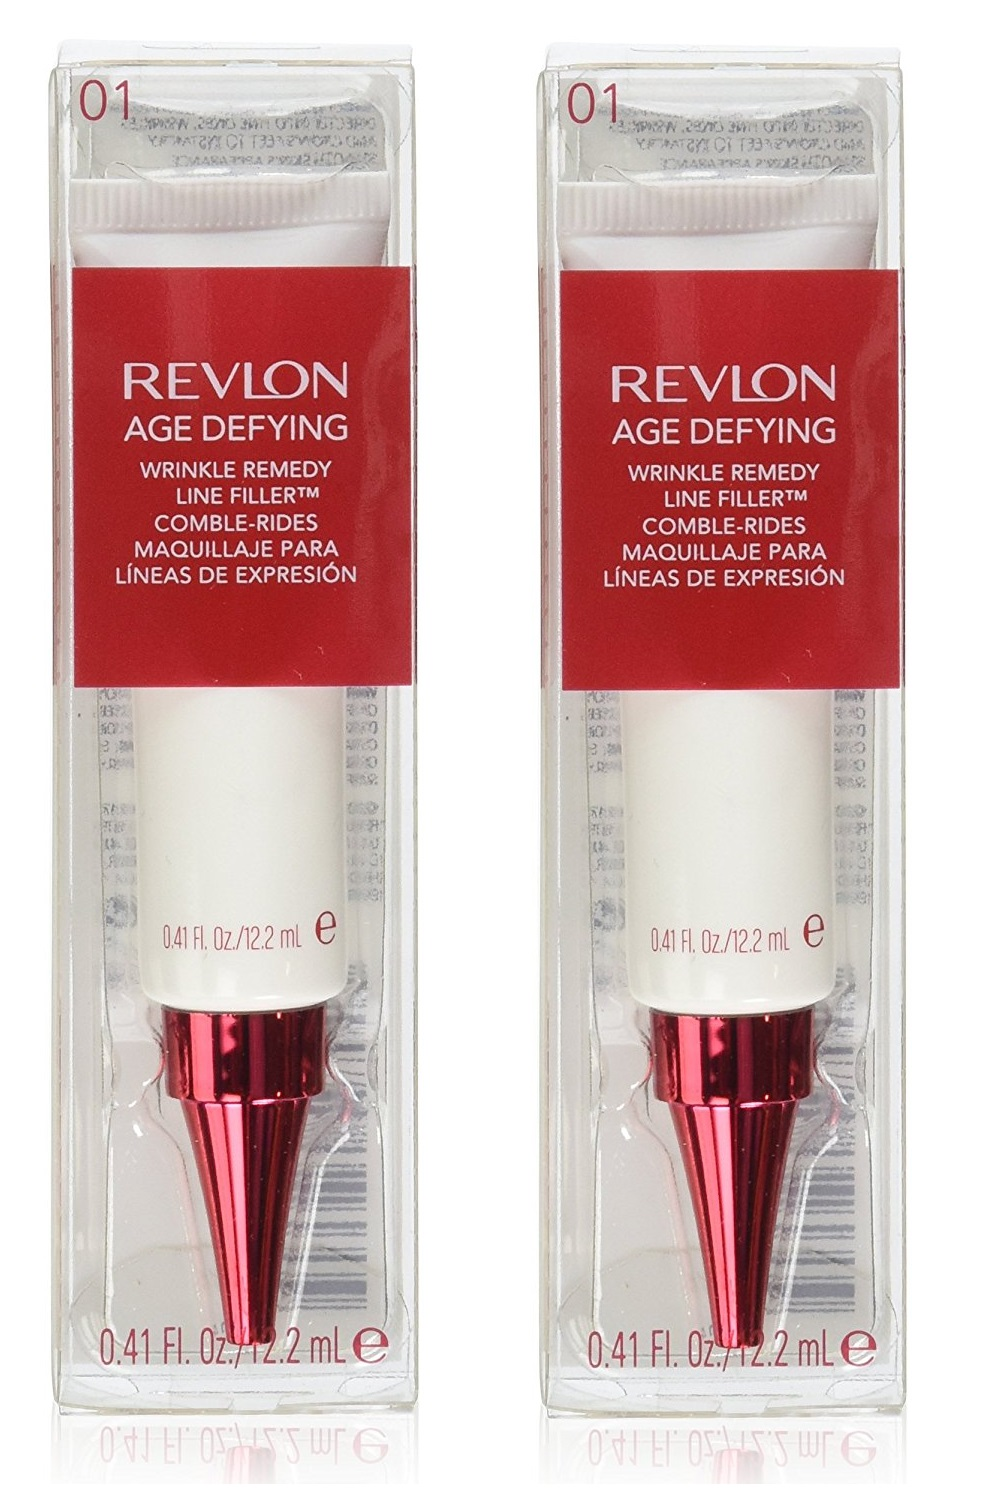 4 Pack - Revlon Age Defying Wrinkle Remedy Line Filler 0.41 oz Guinot - Liftosome - Day/Night Lifting Cream All Skin Types -50ml/1.6oz